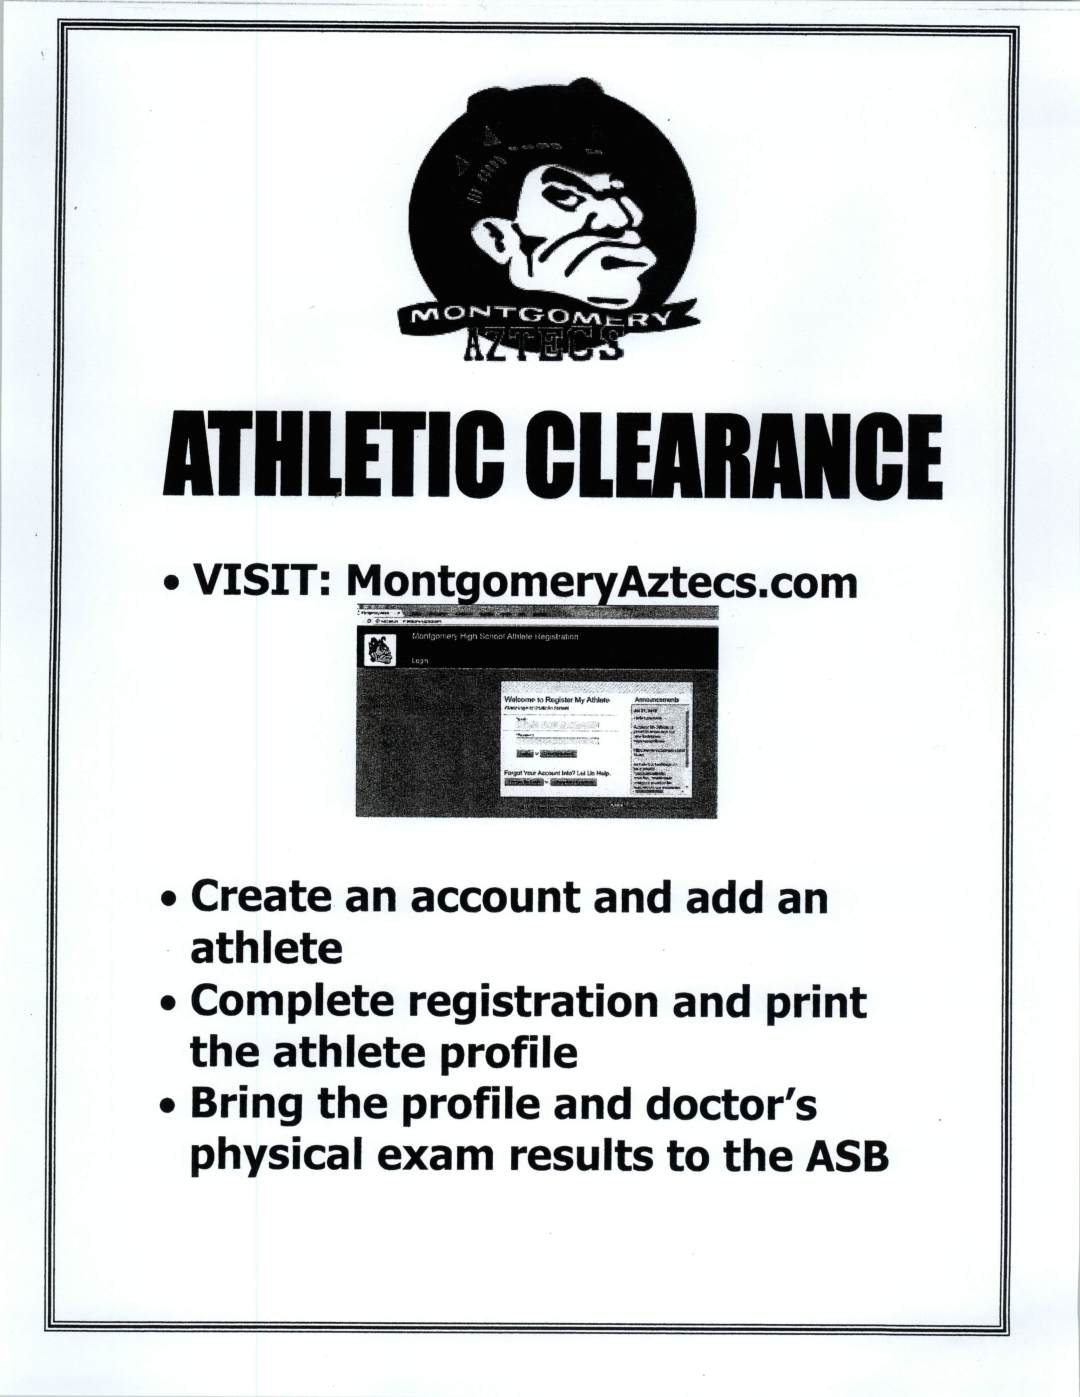 Athletic Clearance flyer